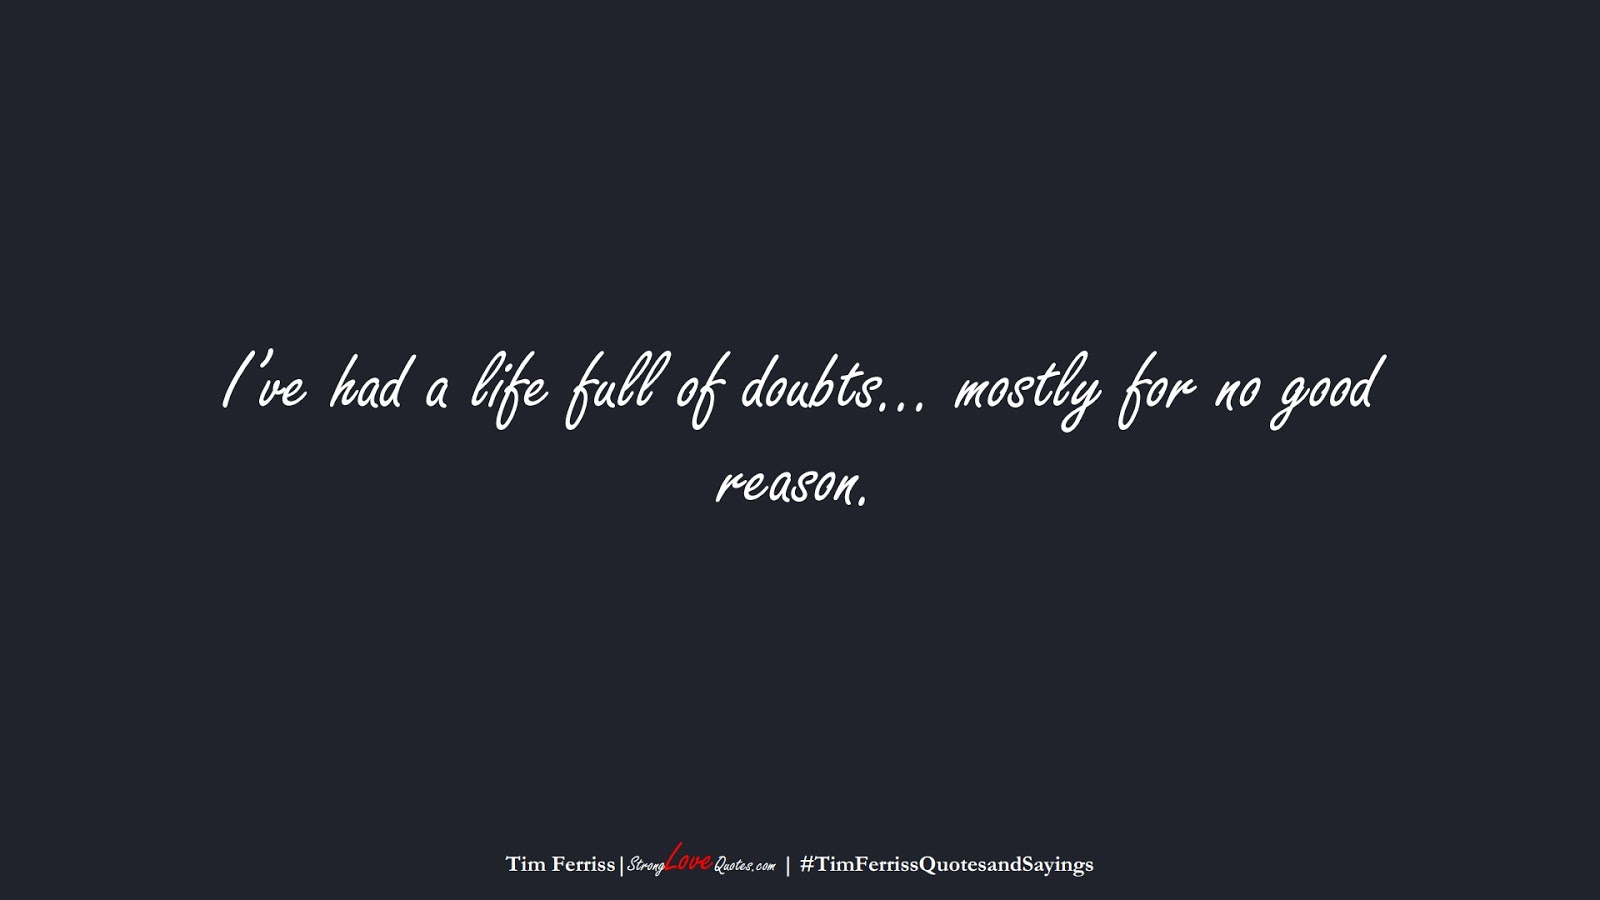 I've had a life full of doubts… mostly for no good reason. (Tim Ferriss);  #TimFerrissQuotesandSayings